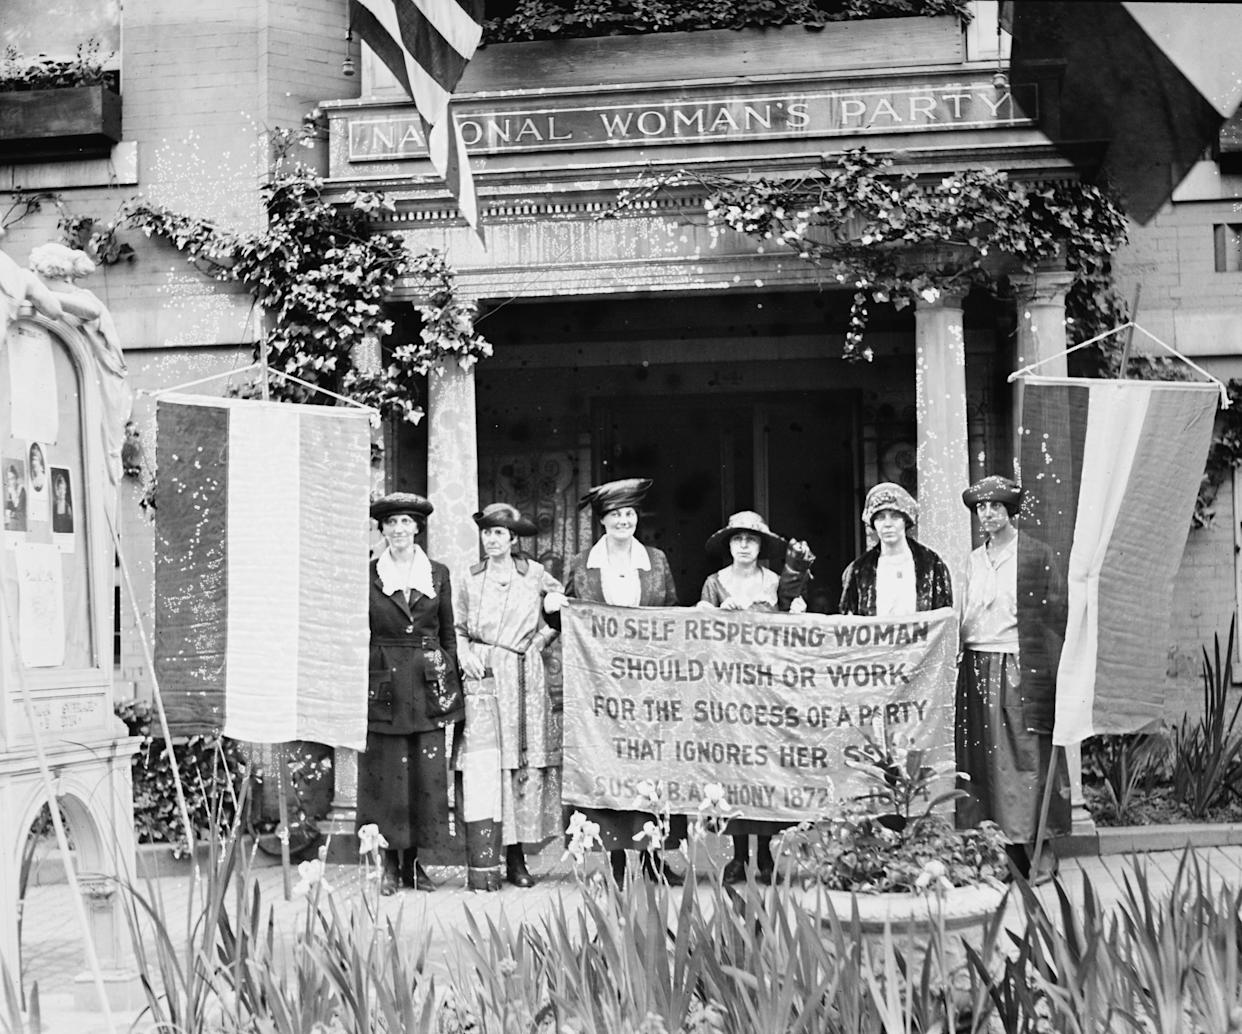 Suffragettes hold up banner in front of a building that has an architrave sign of the National Woman's Party circa 1918.